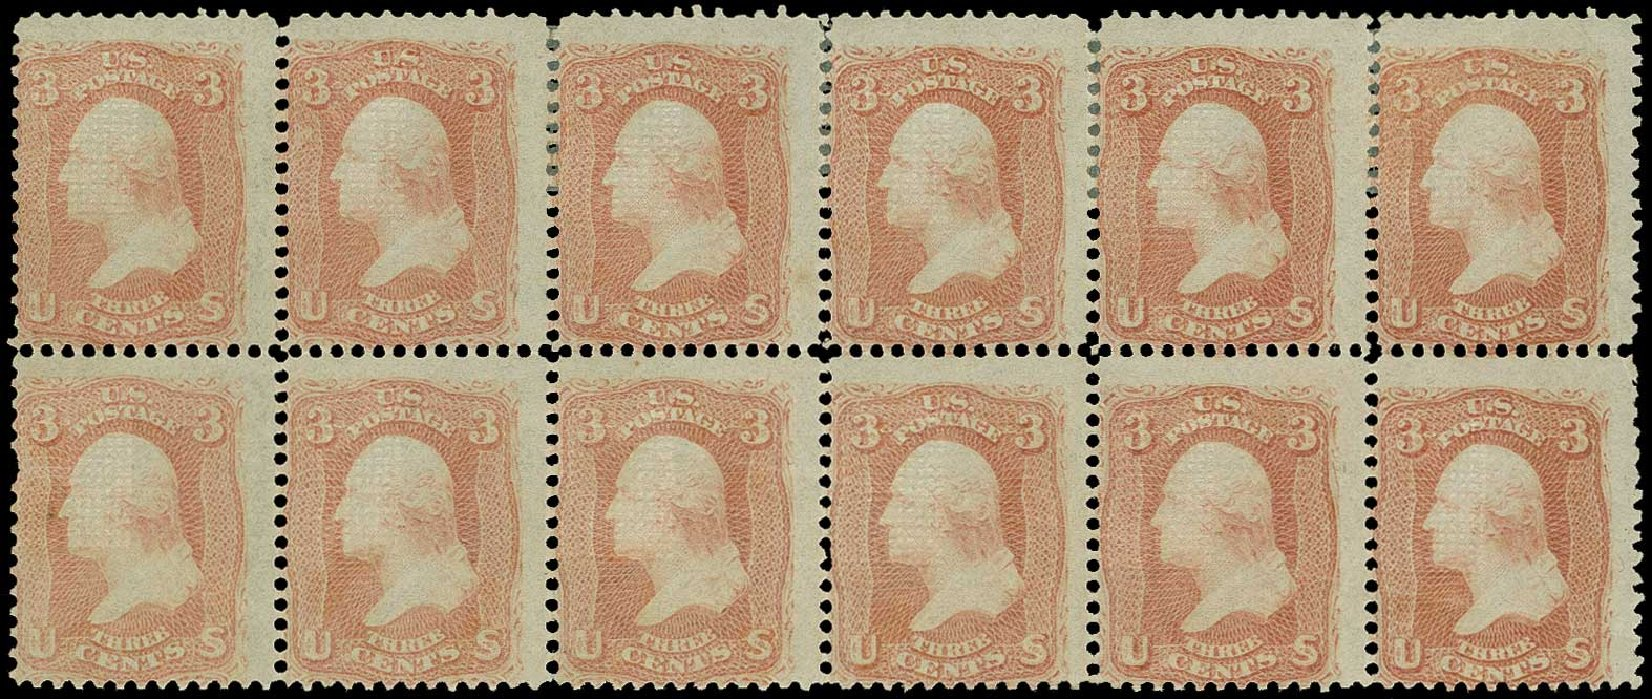 Cost of US Stamps Scott # 94 - 3c 1868 Washington Grill. H.R. Harmer, Jun 2015, Sale 3007, Lot 3169